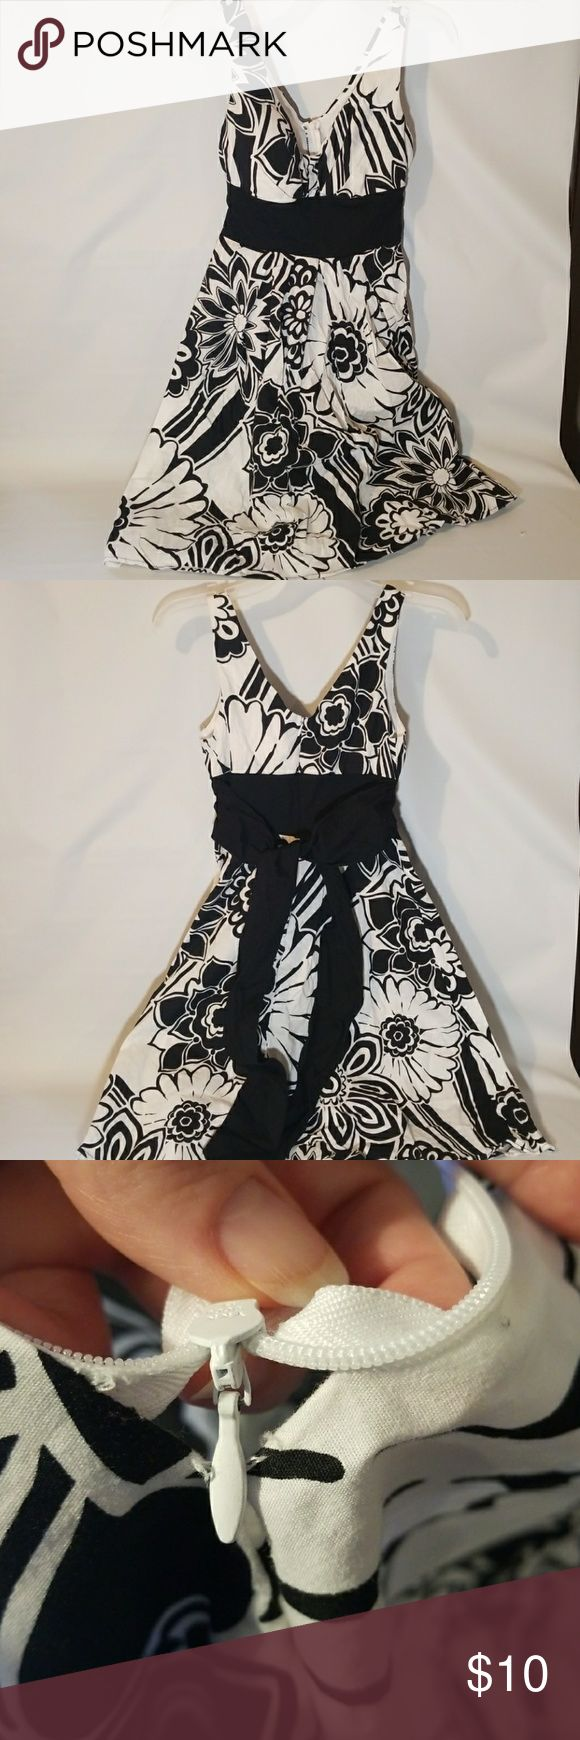 Black and White Flower Dress 4 B Smart Black and White Flower Dress . Seam may need sewn back at bottom of zipper see photo size 4 B Smart Dresses Mini